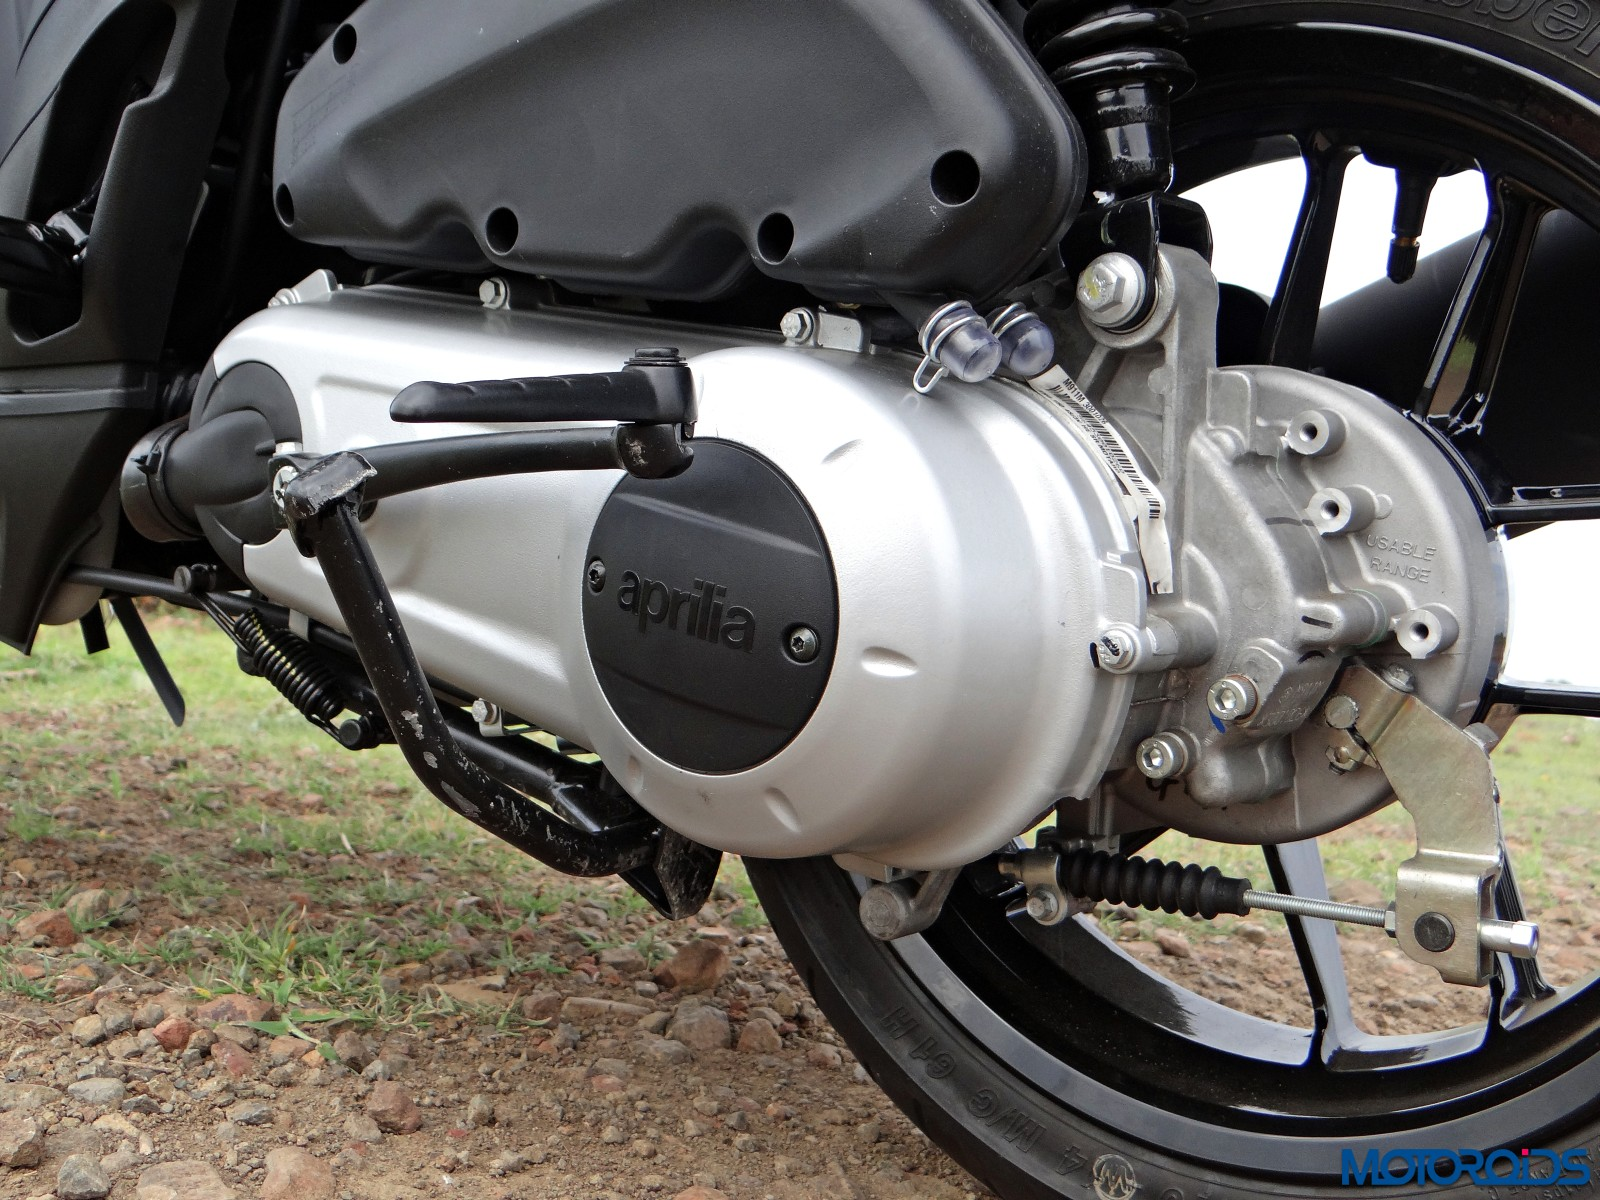 Aprilia SR 150 Review - Details - Engine (2)